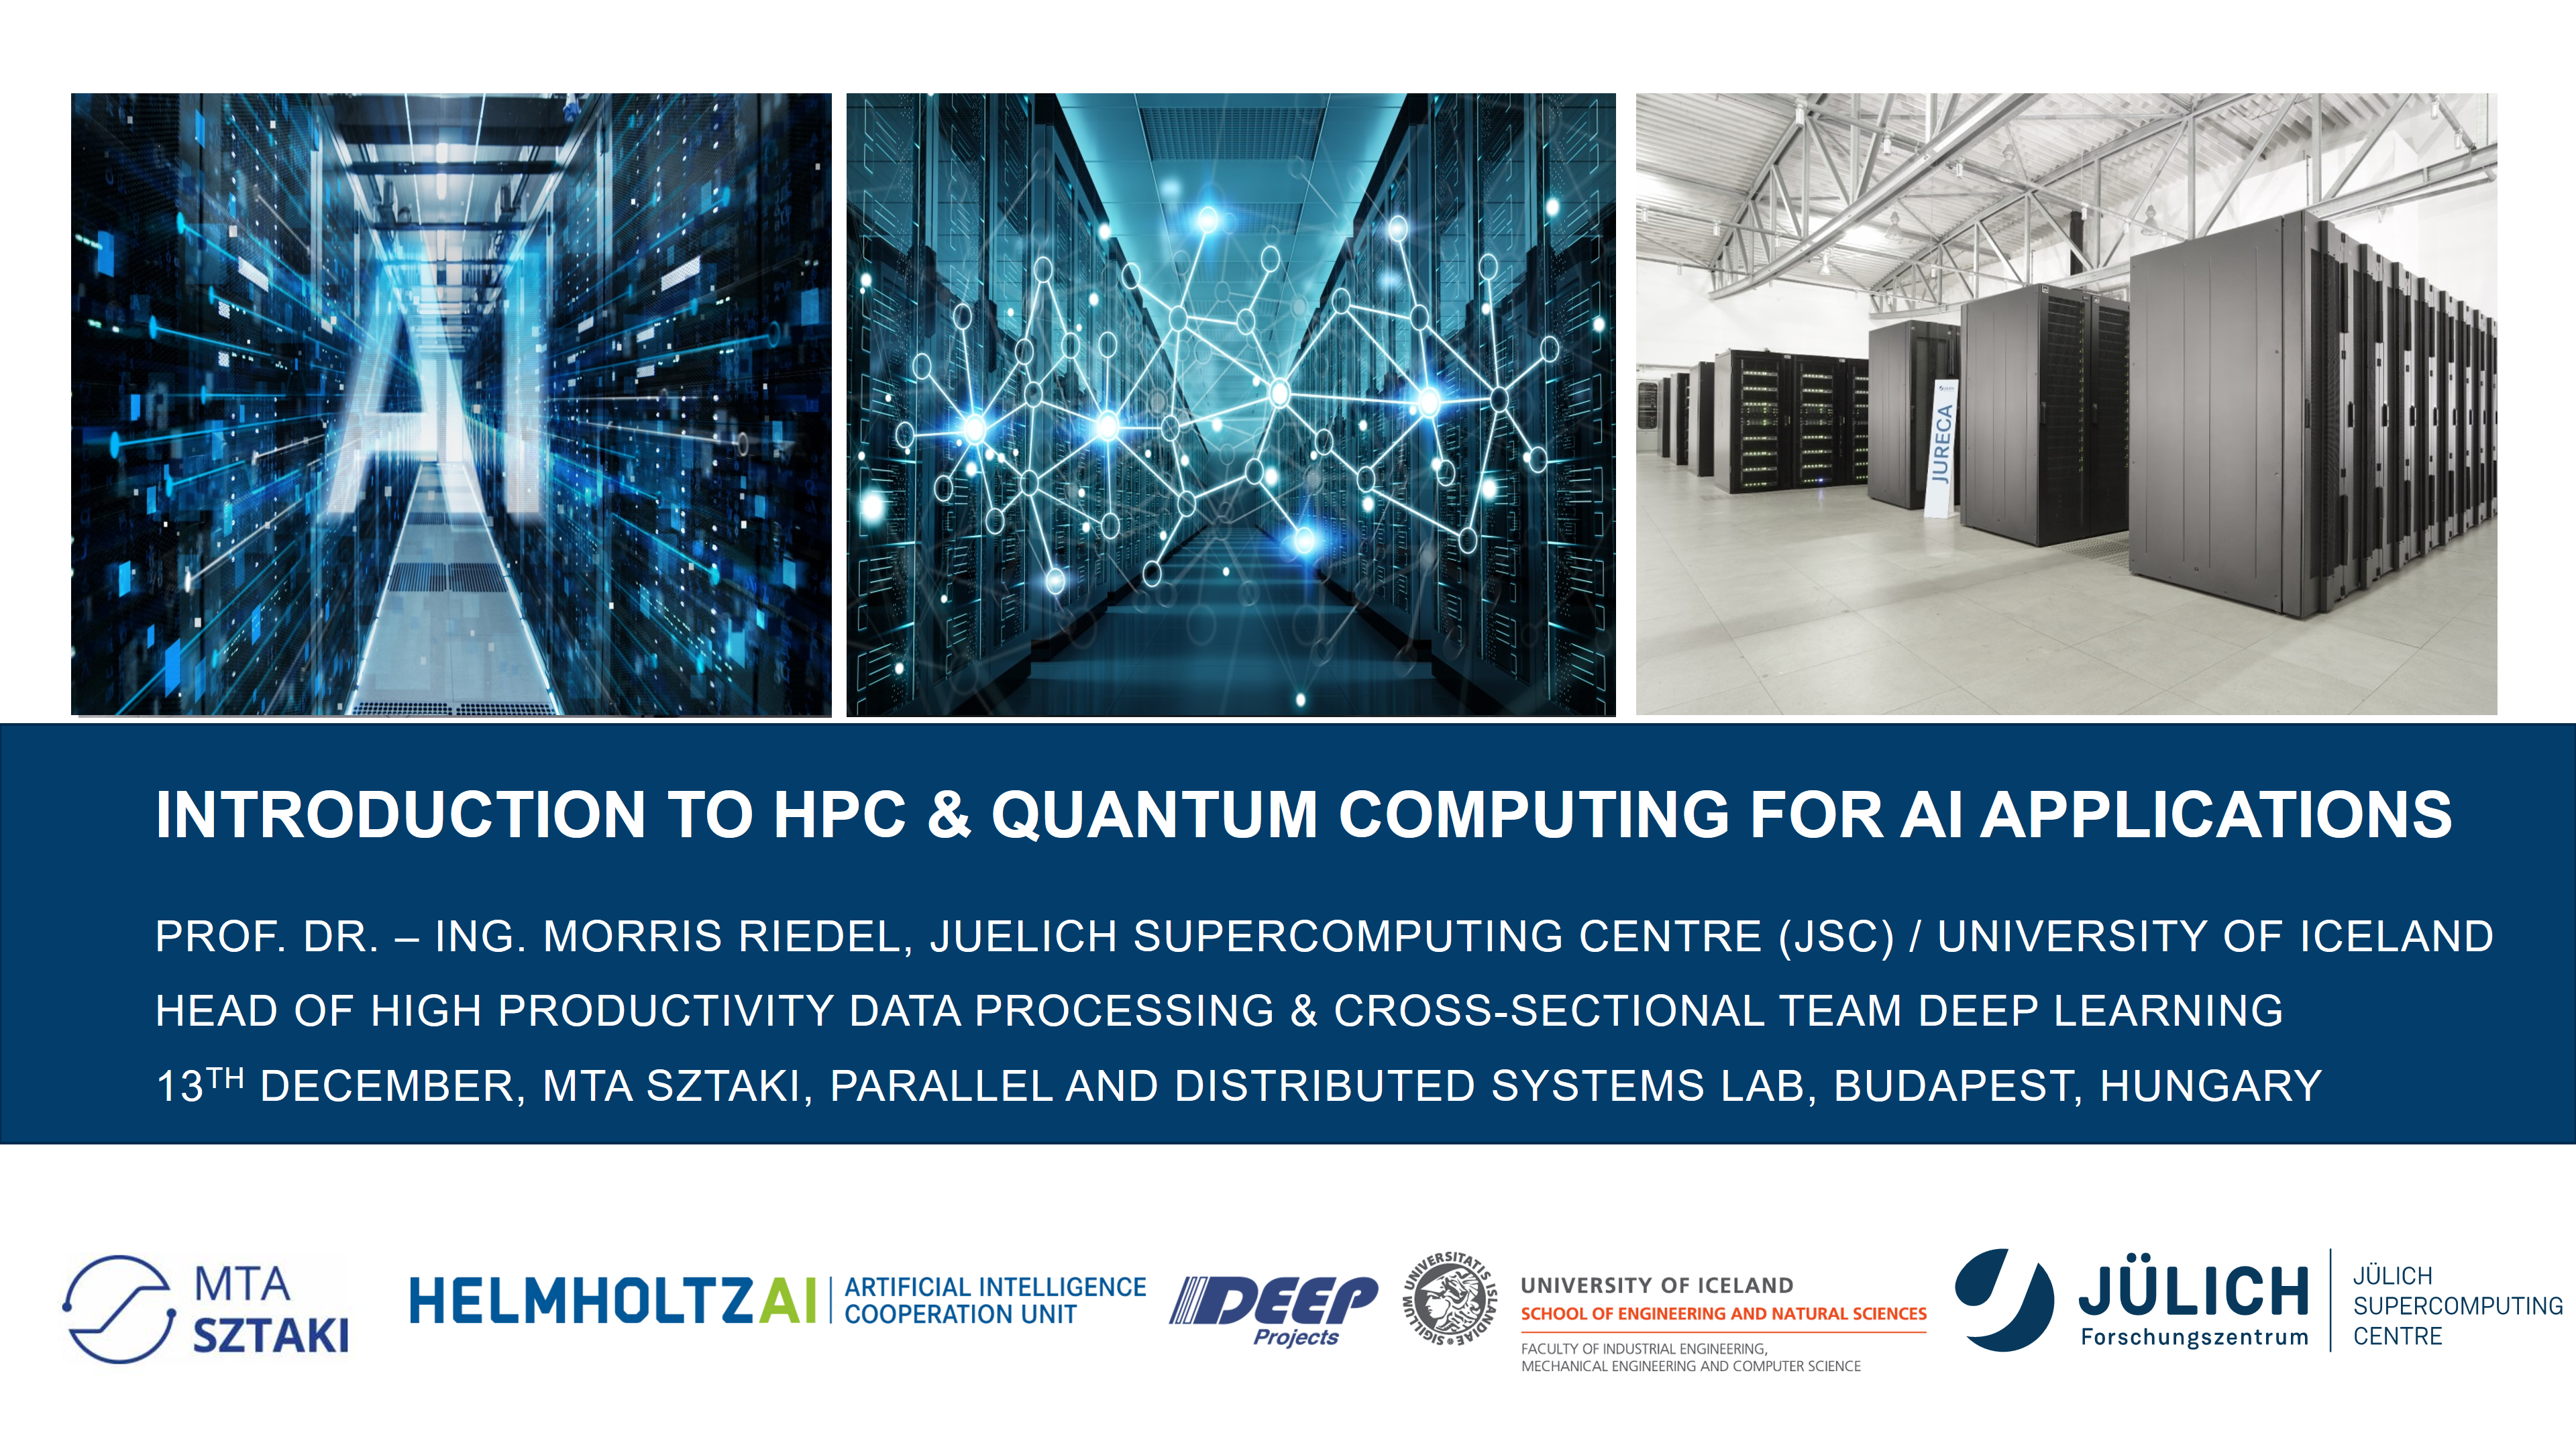 Introduction to HPC and Quantum Computing for AI Applications